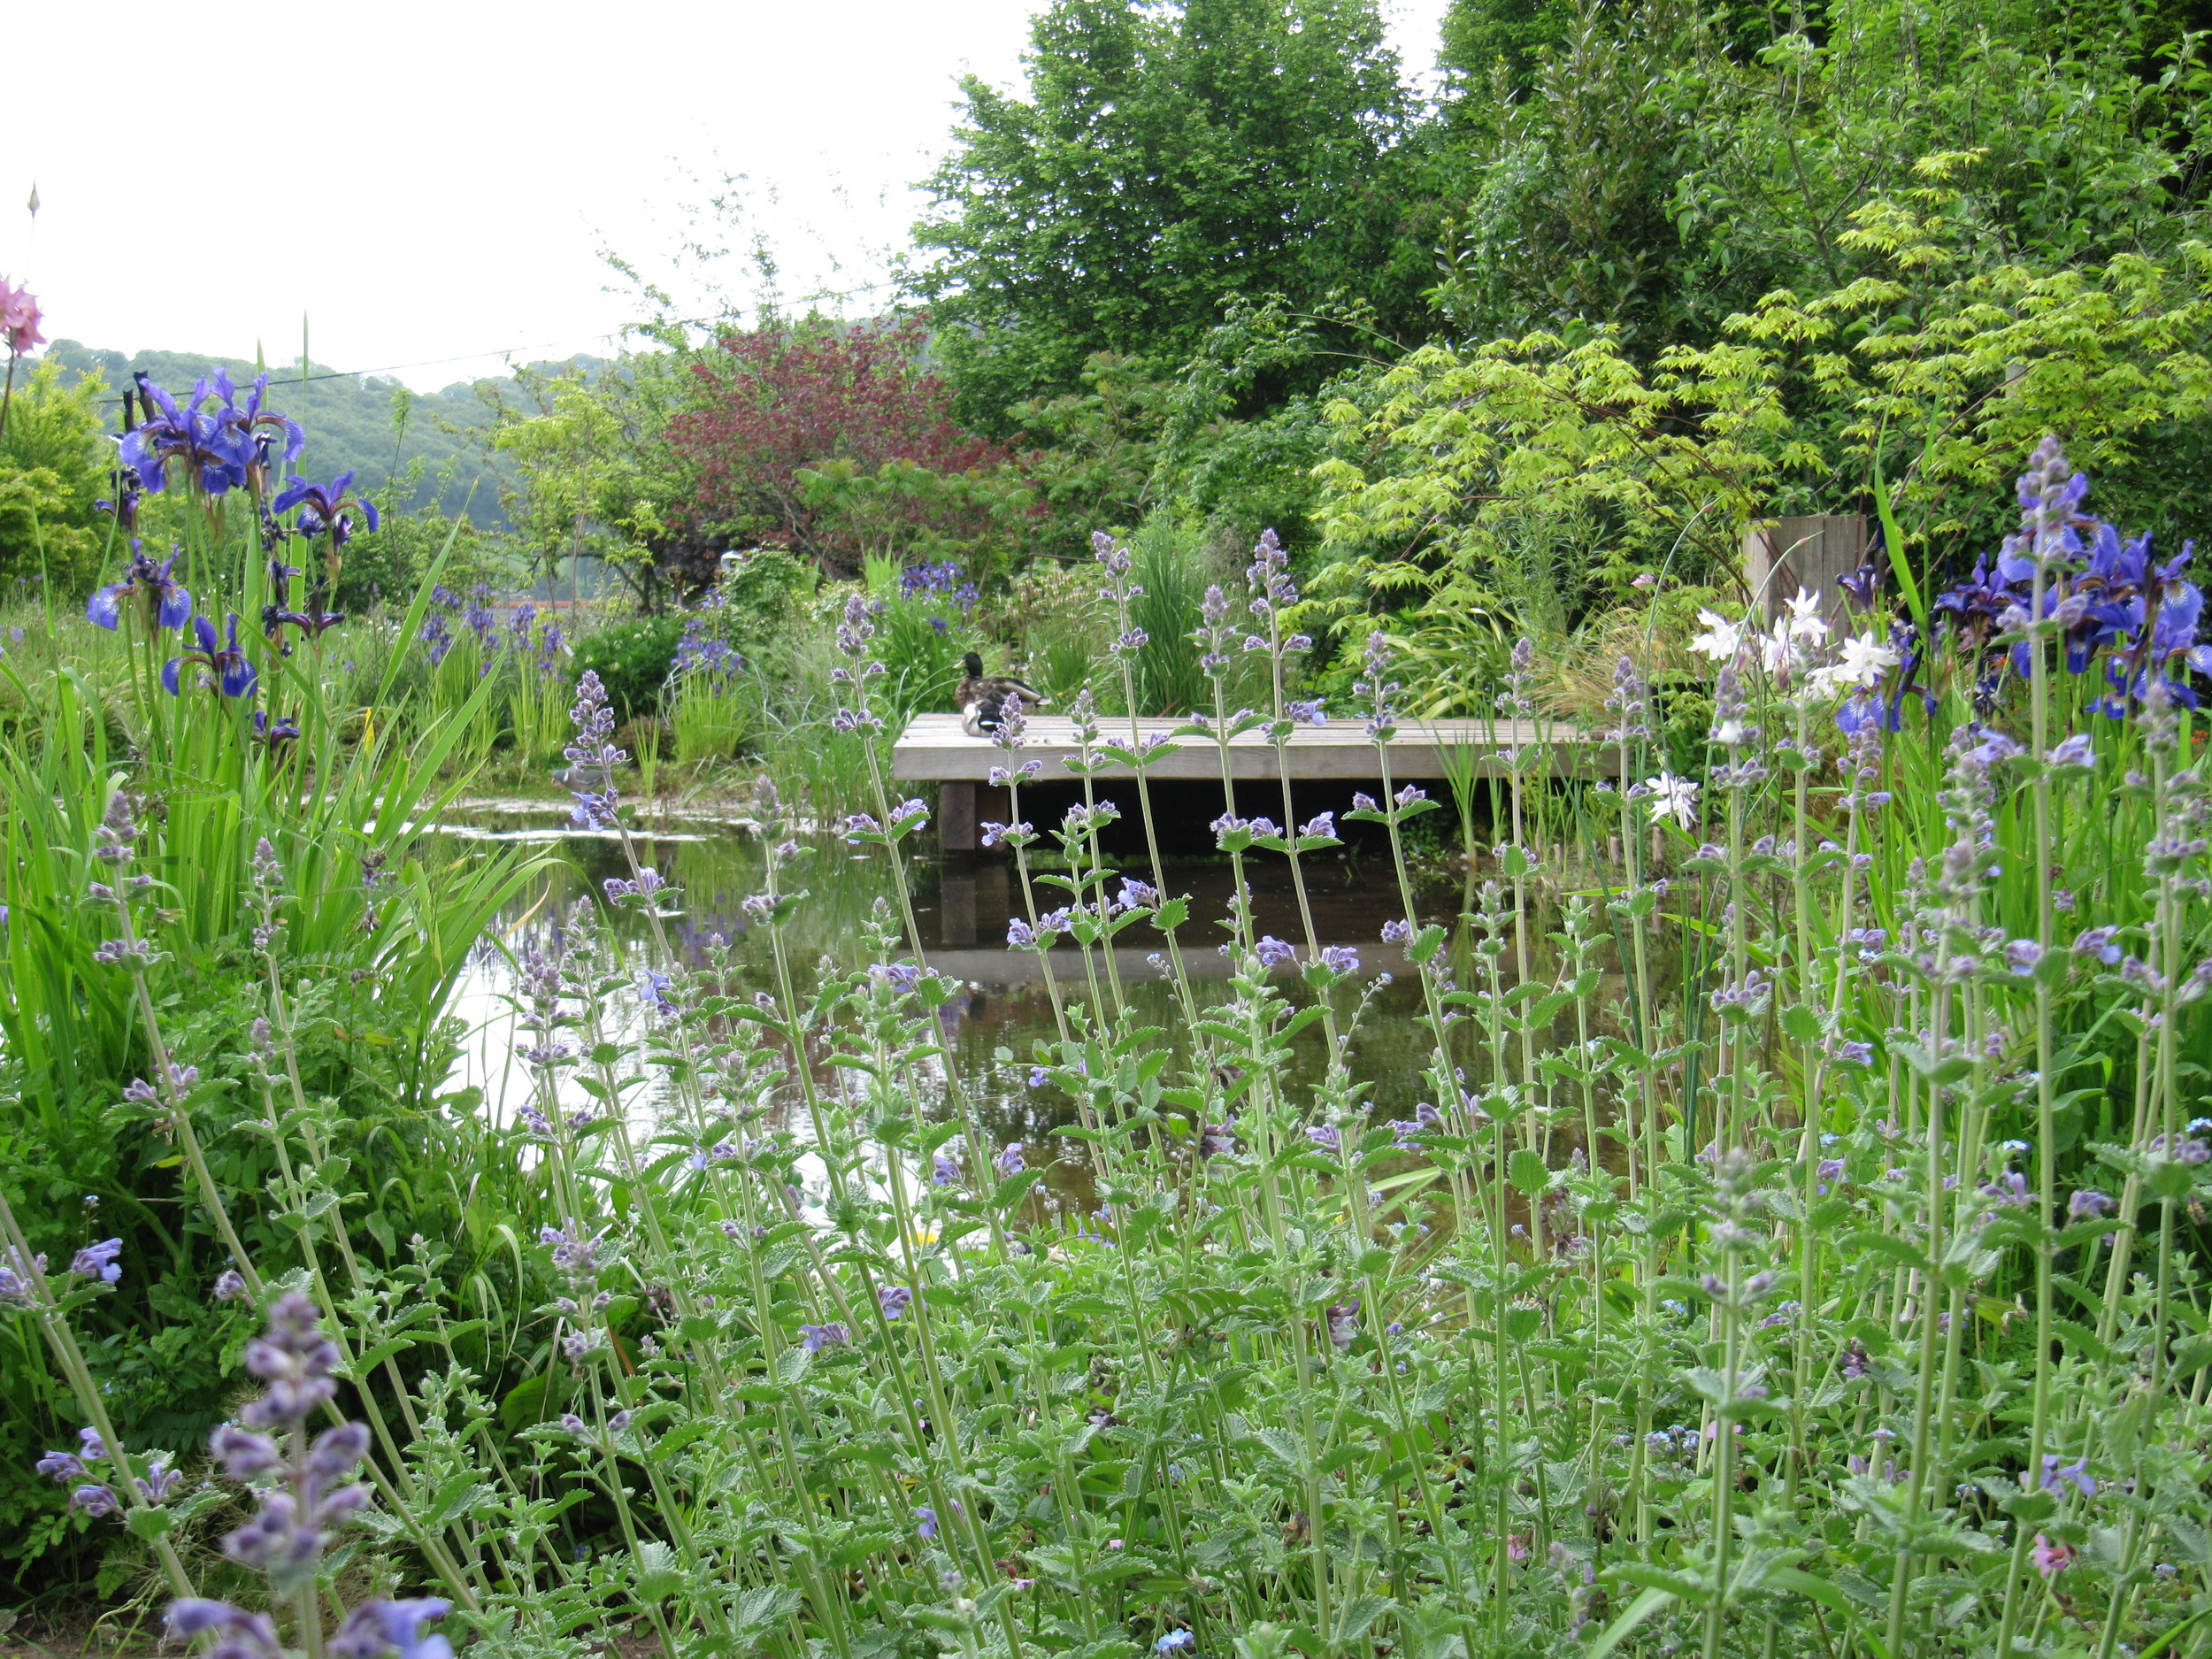 A wildlife pond surrounded by a mix of natives and ornamental plants to give a long season of interest to insects, birds, amphibians and people.